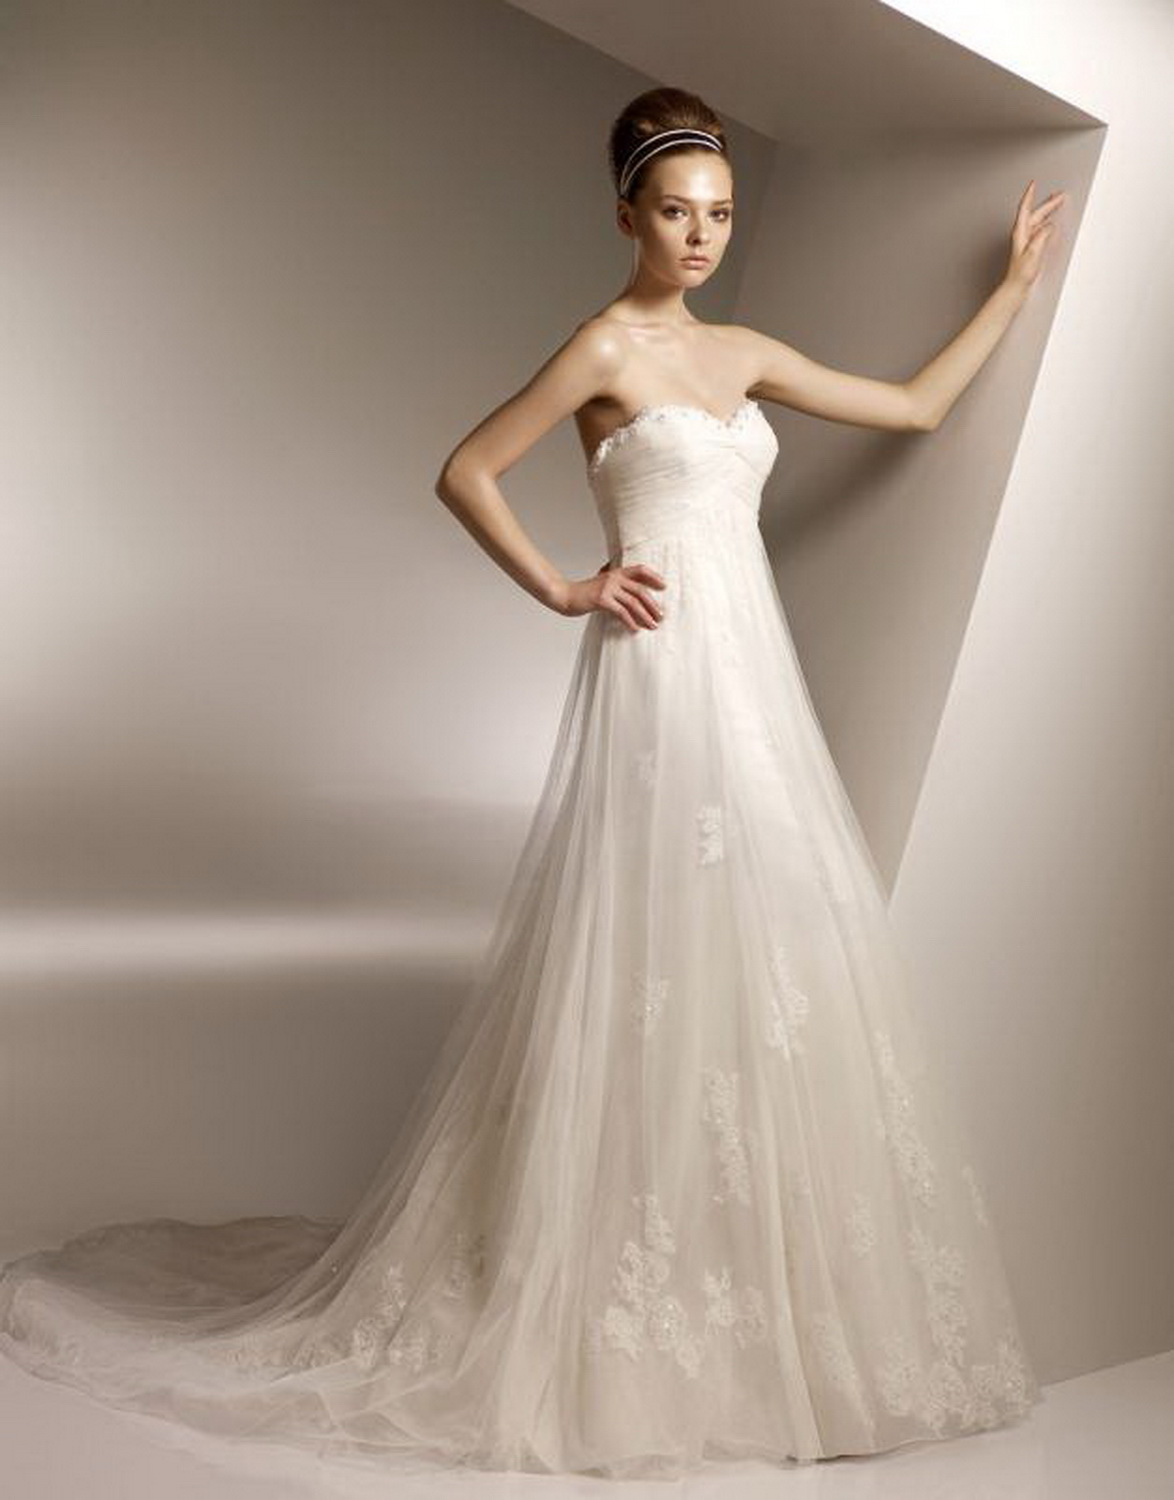 Anjolique Bridal Gowns picture